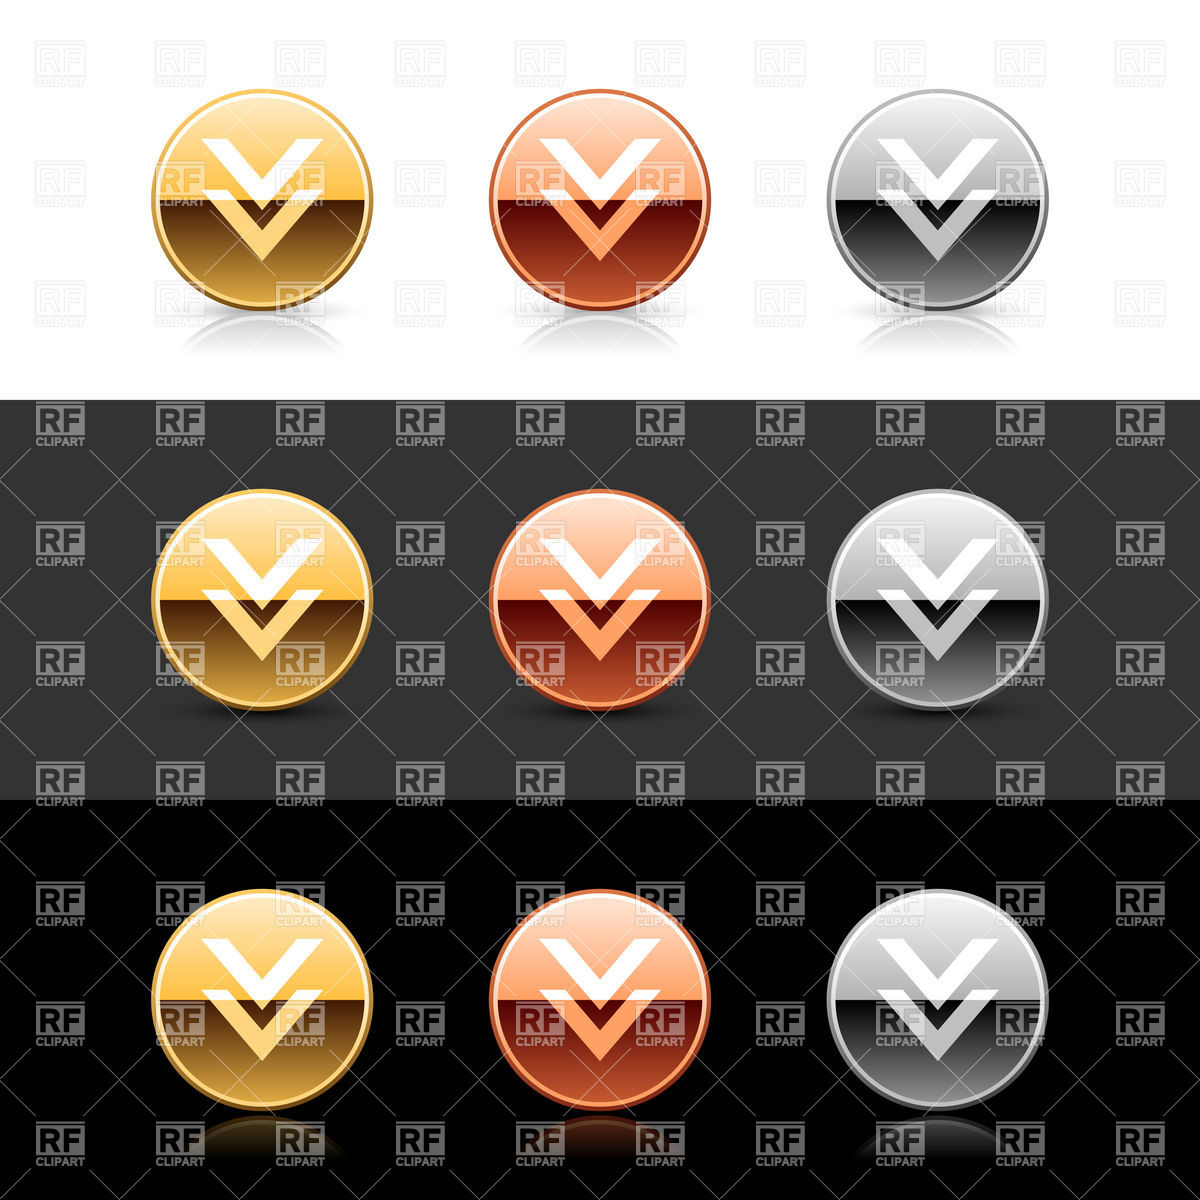 Metal glossy download buttons Vector Image #13960.